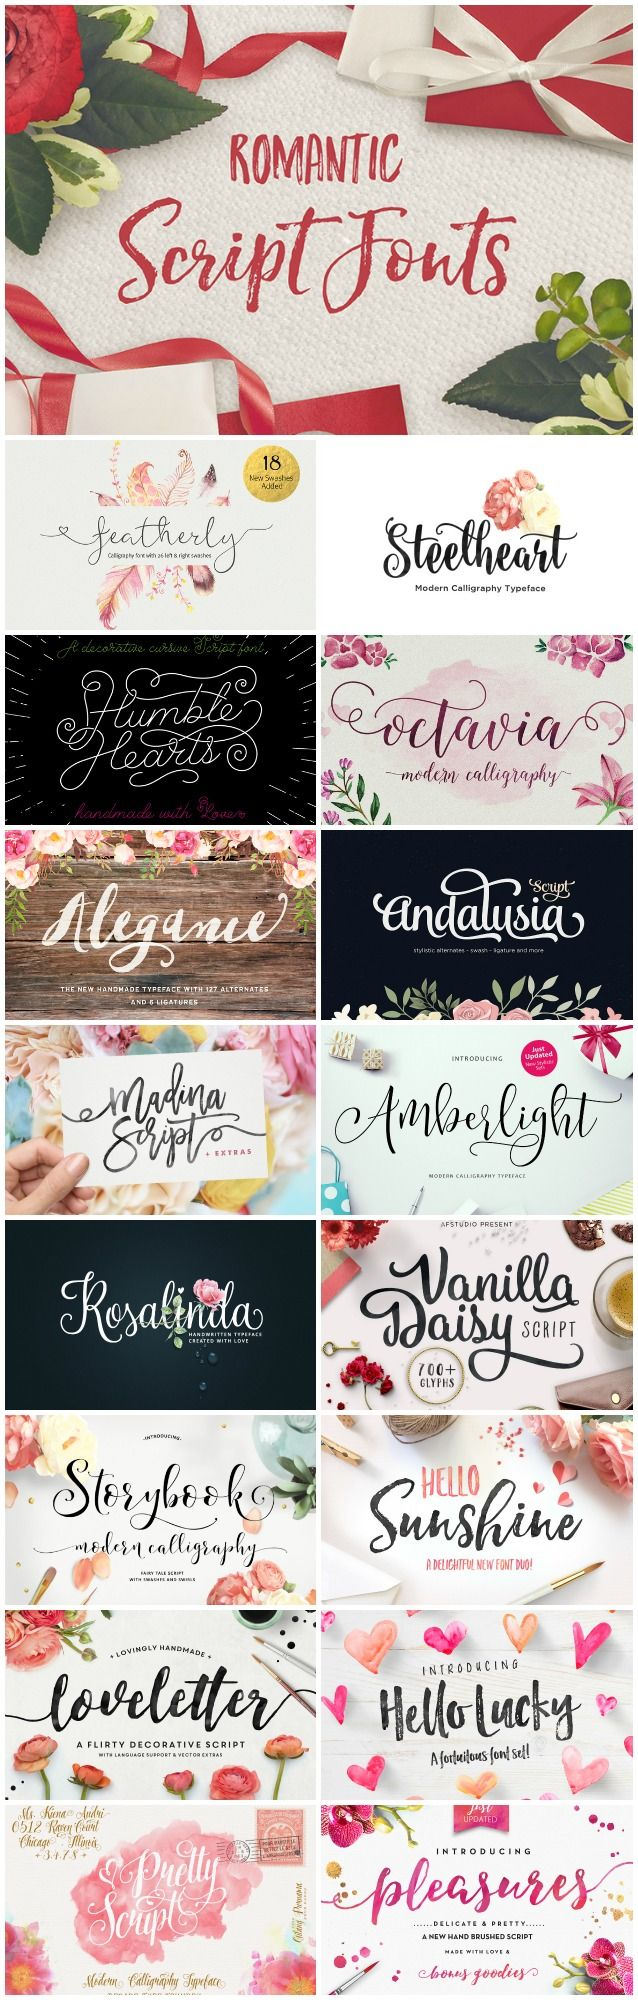 Romantic script fonts for valentine s day and beyond